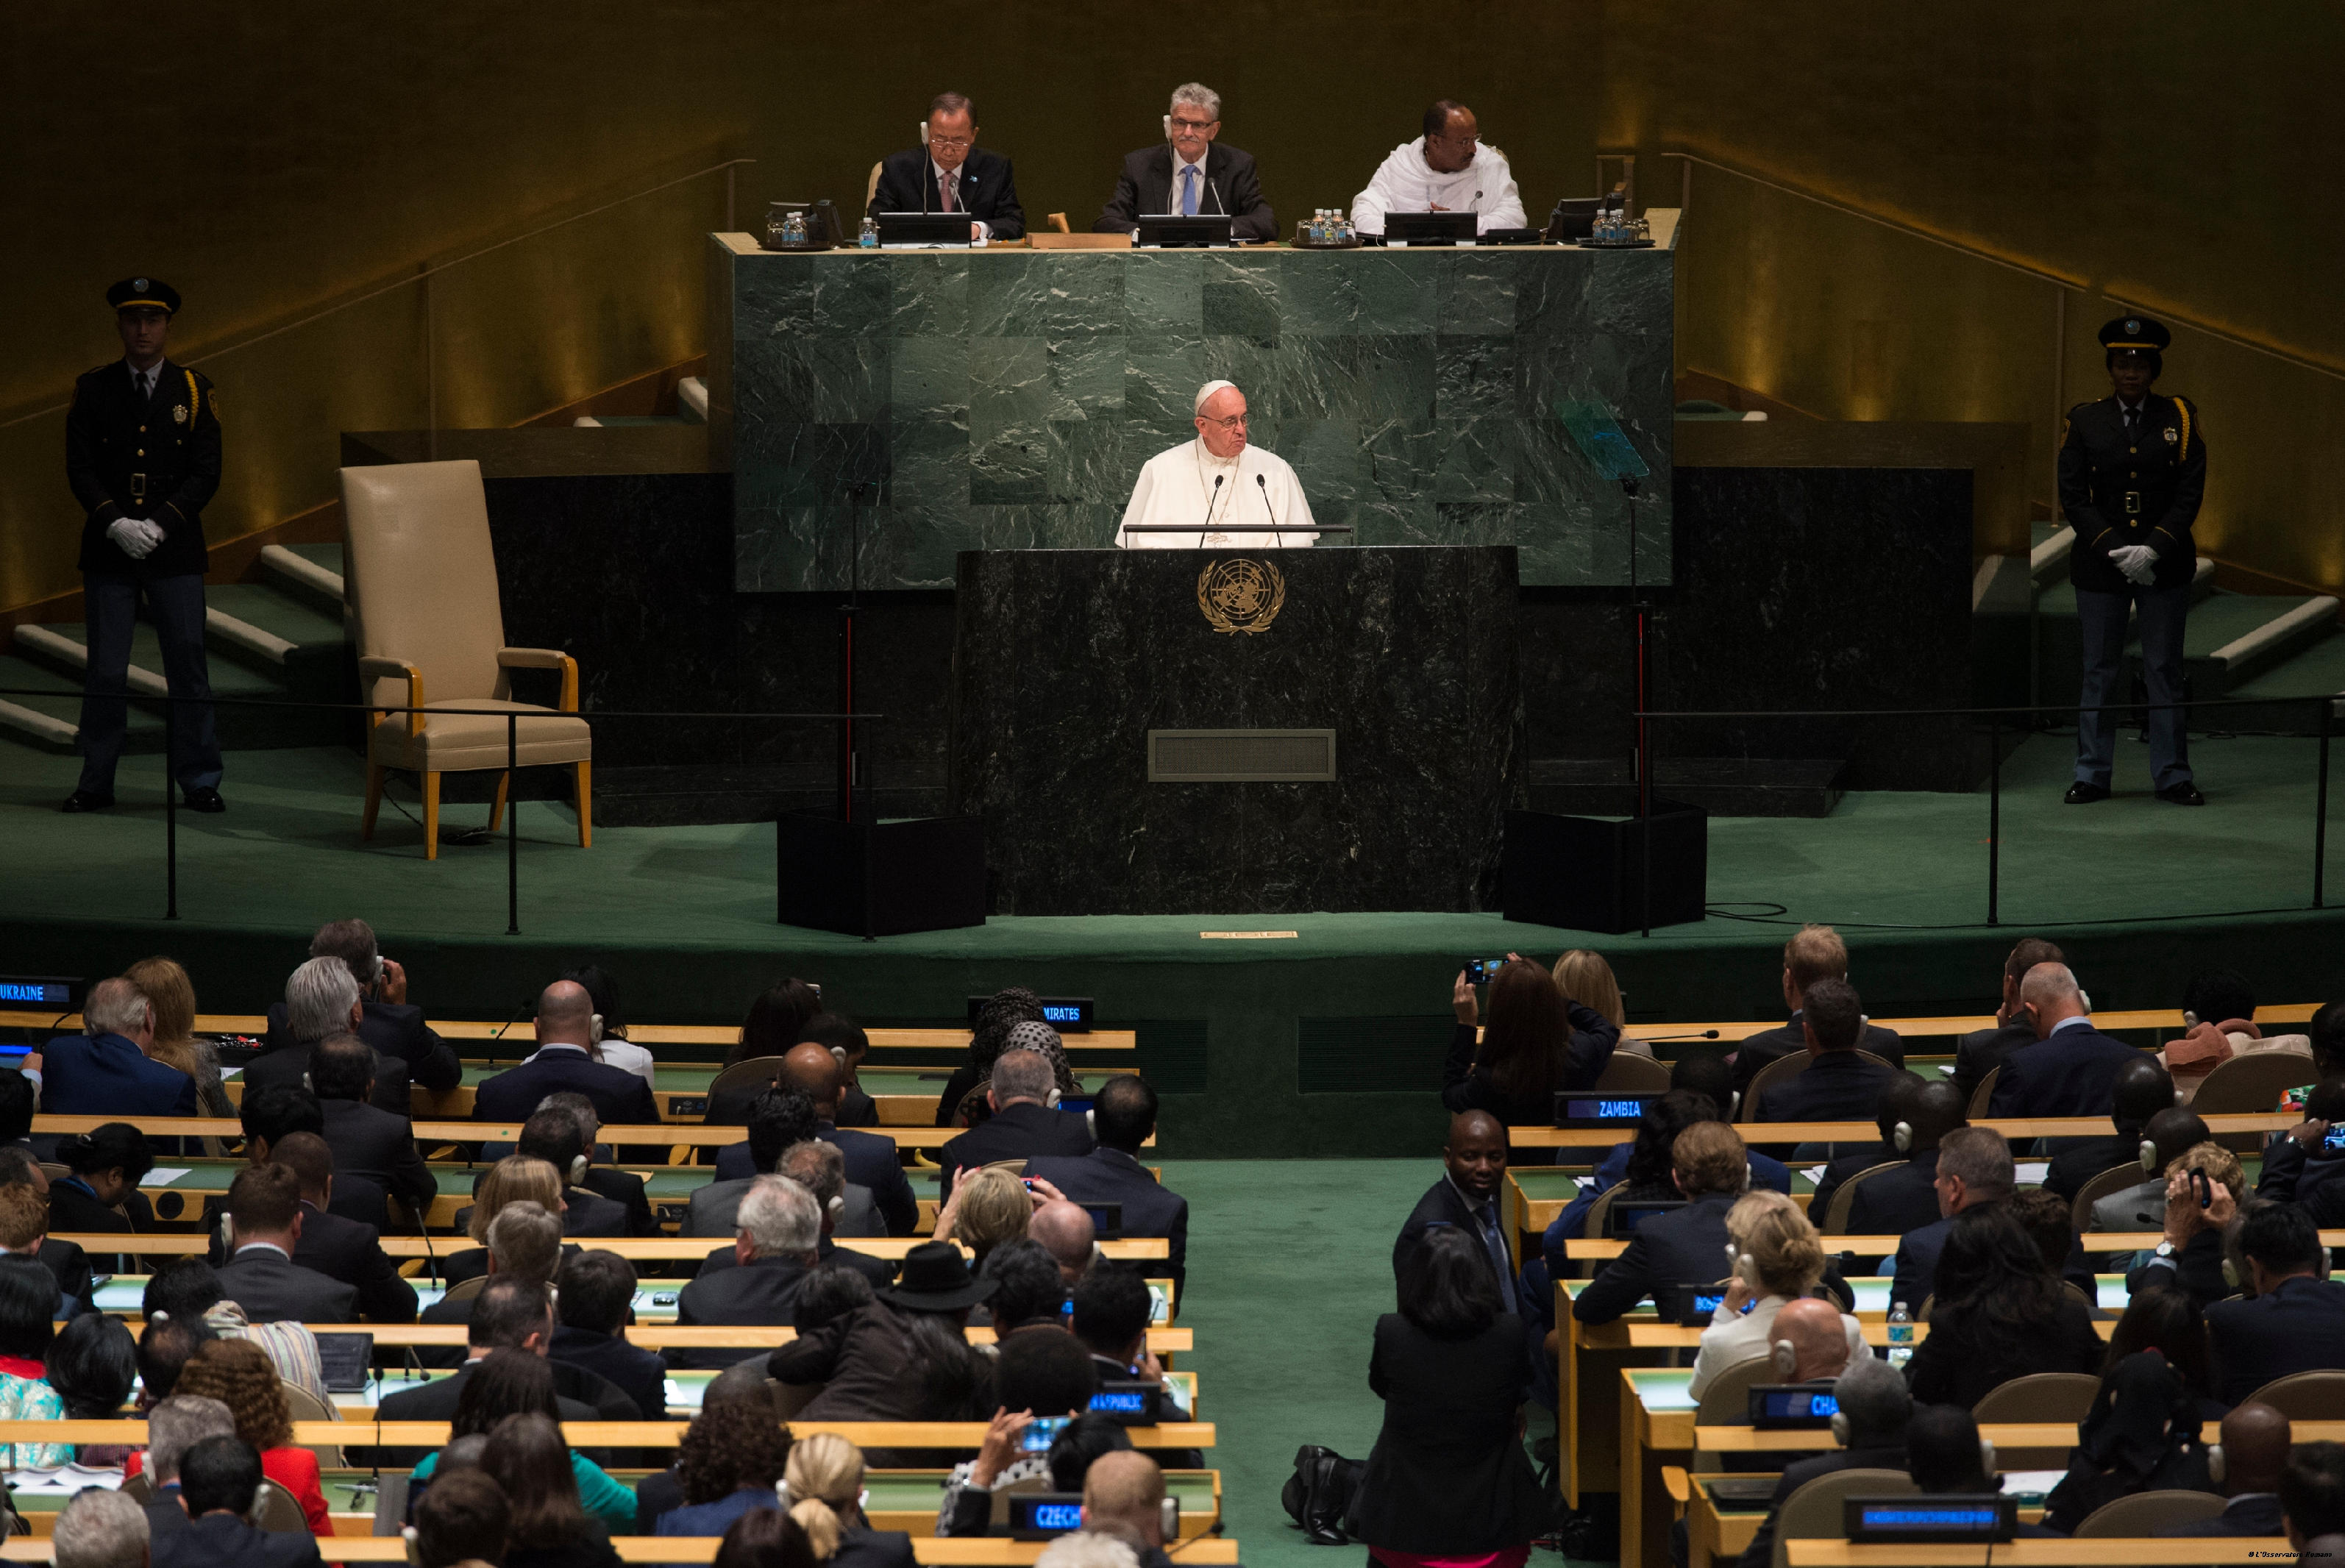 Pope Francis addresses the United Nations General Assembly in New York